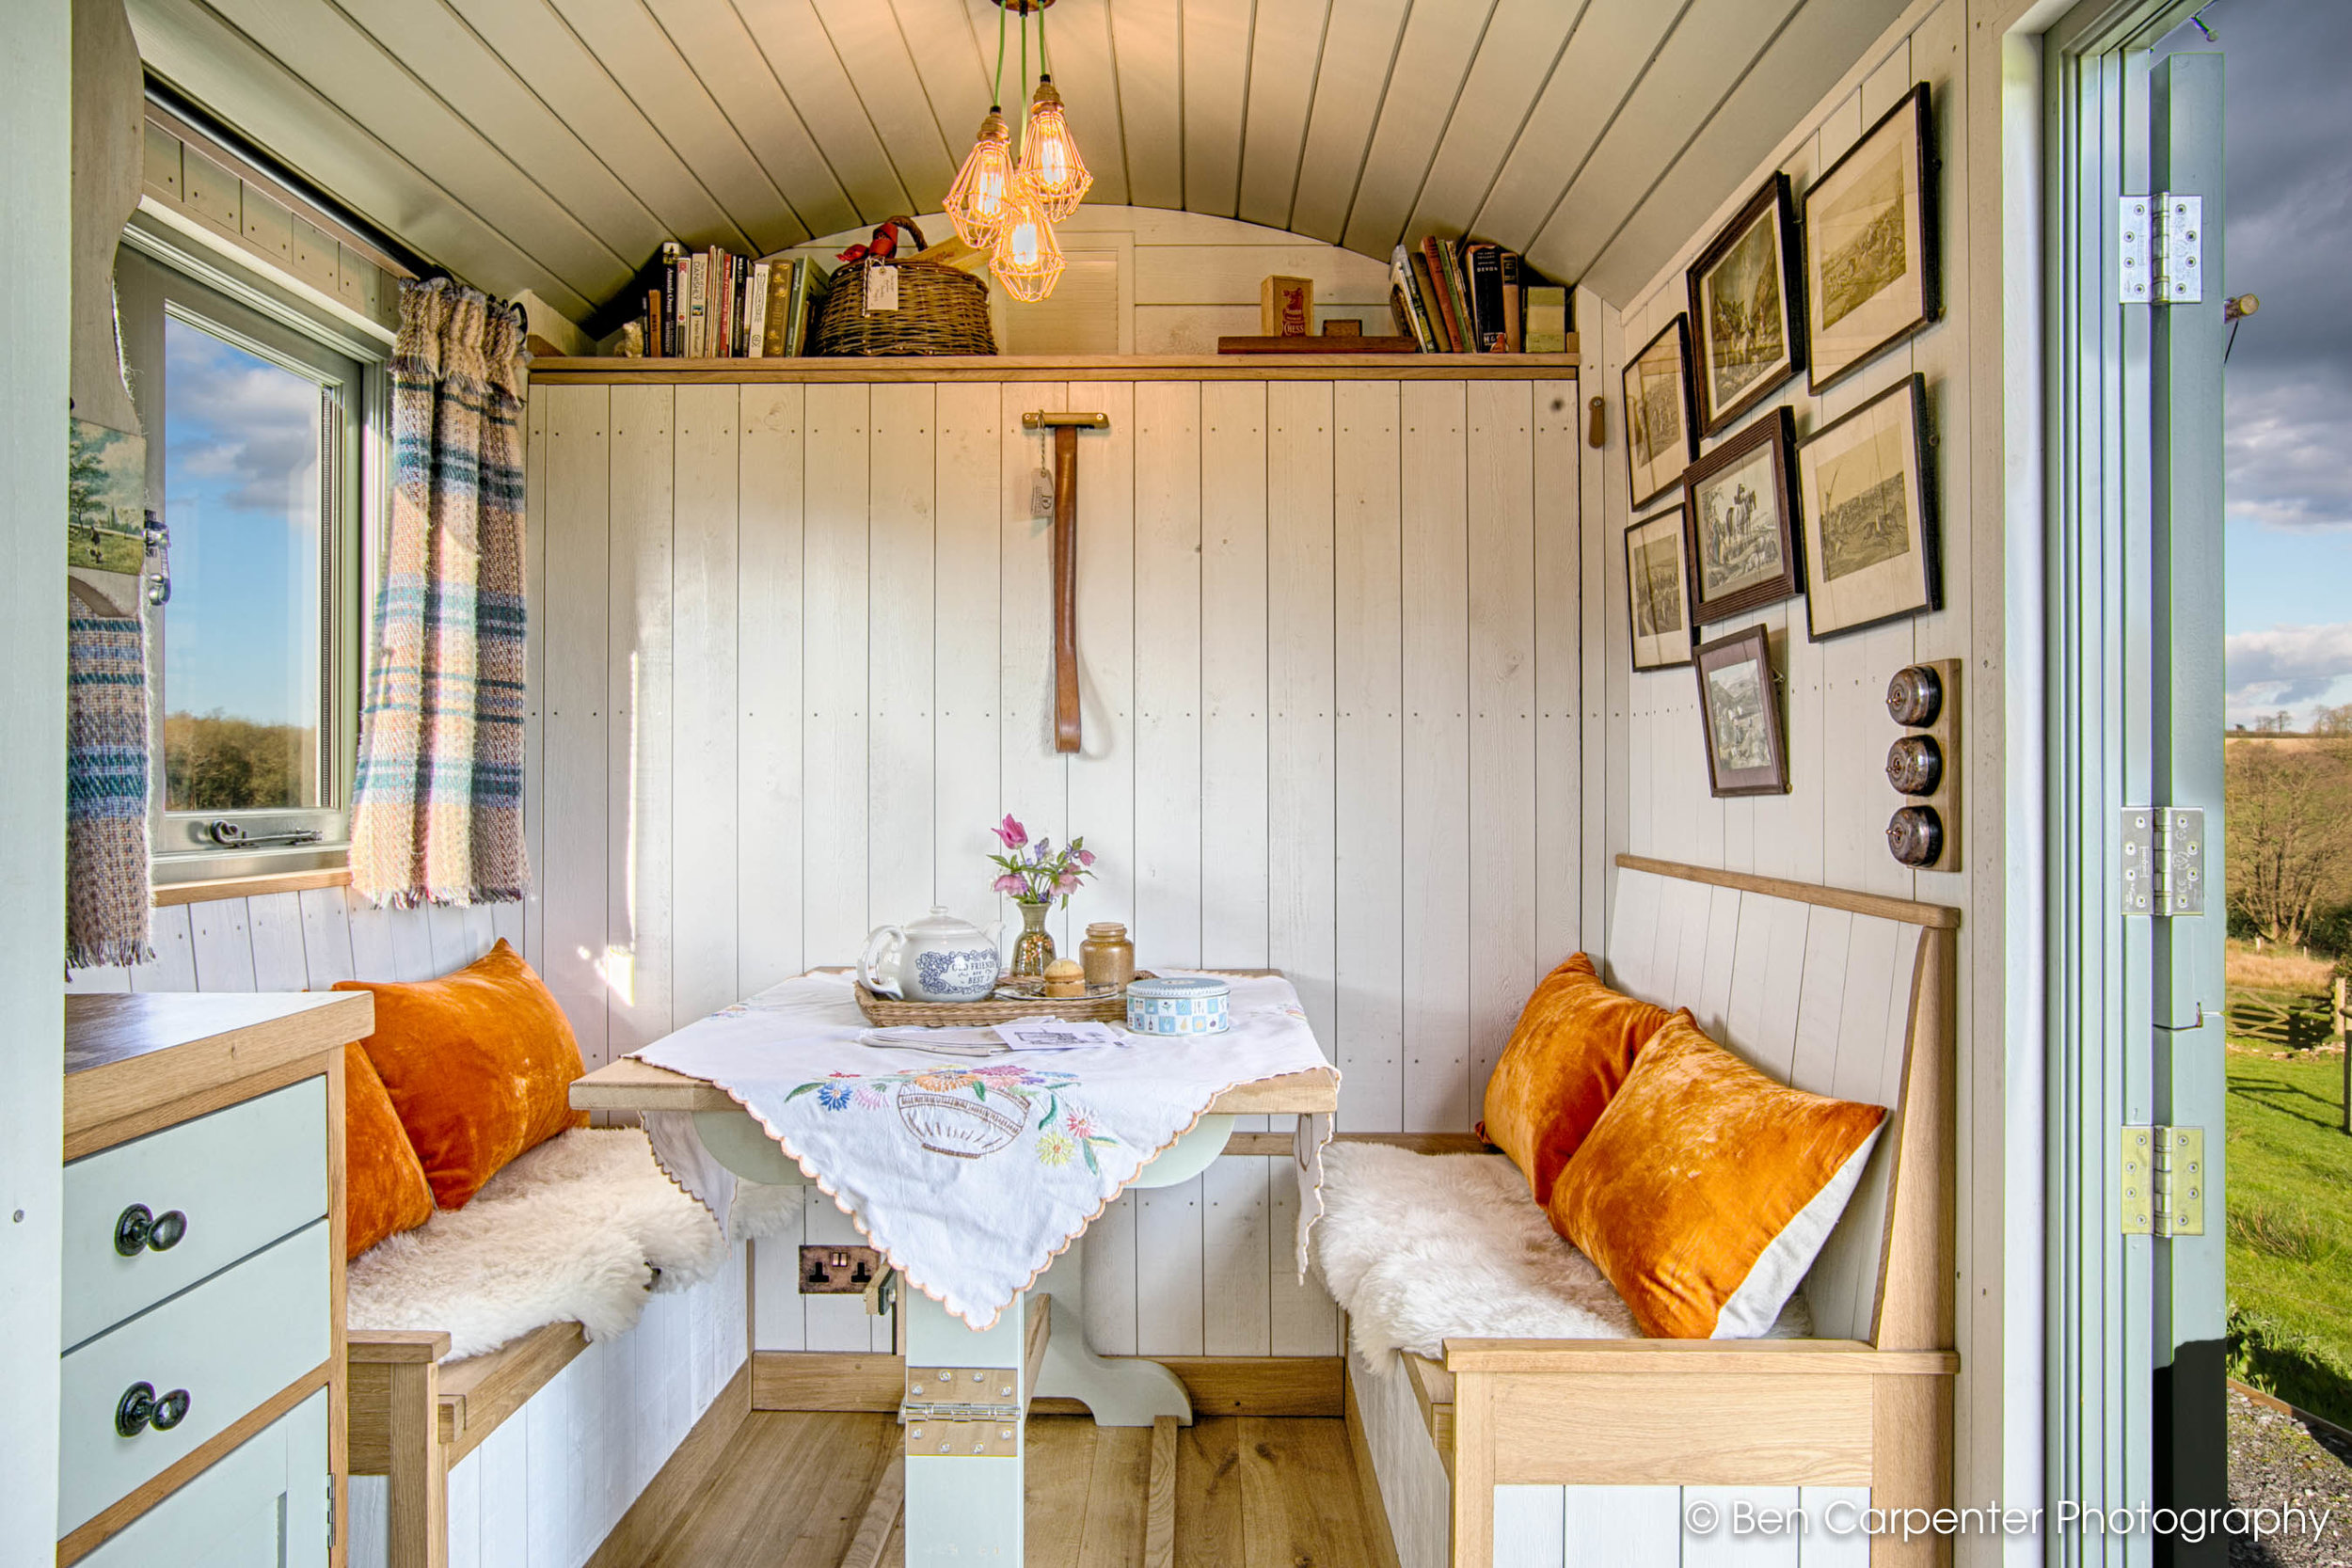 Dimpsey Glamping - - The Rural Travel Guide